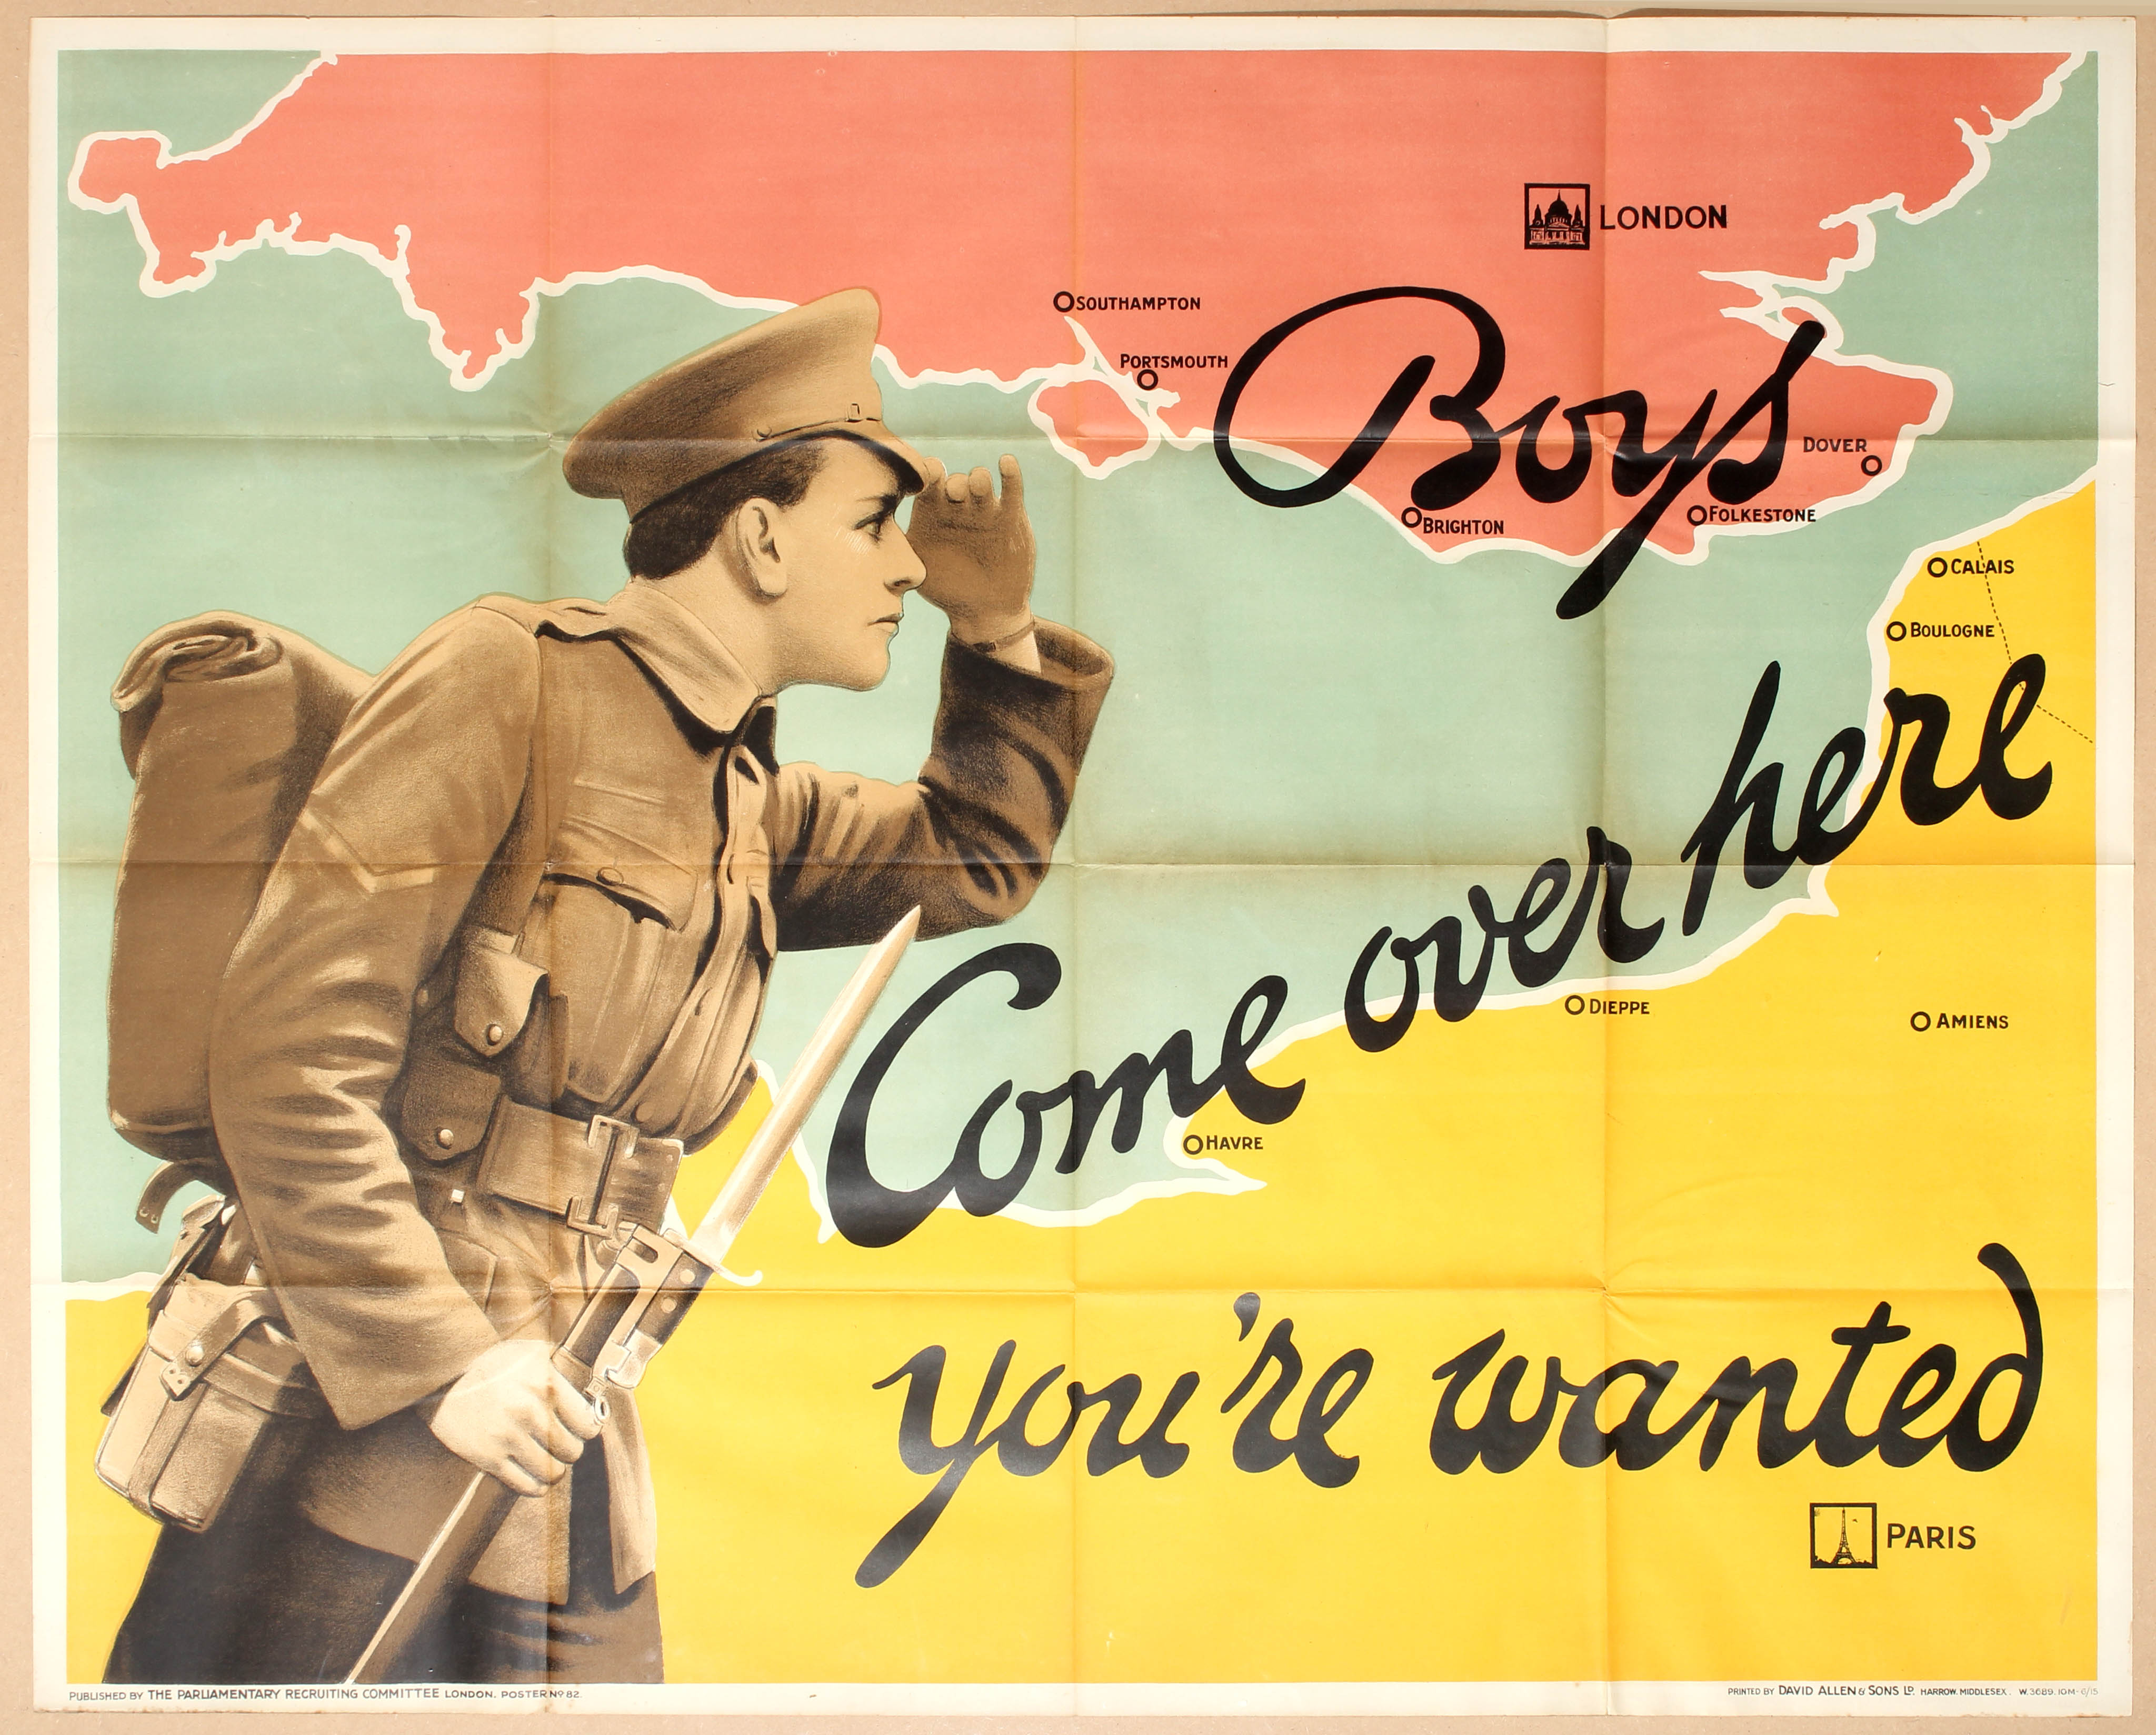 Lot 4113 - Propaganda poster Boys Come over here you're wanted